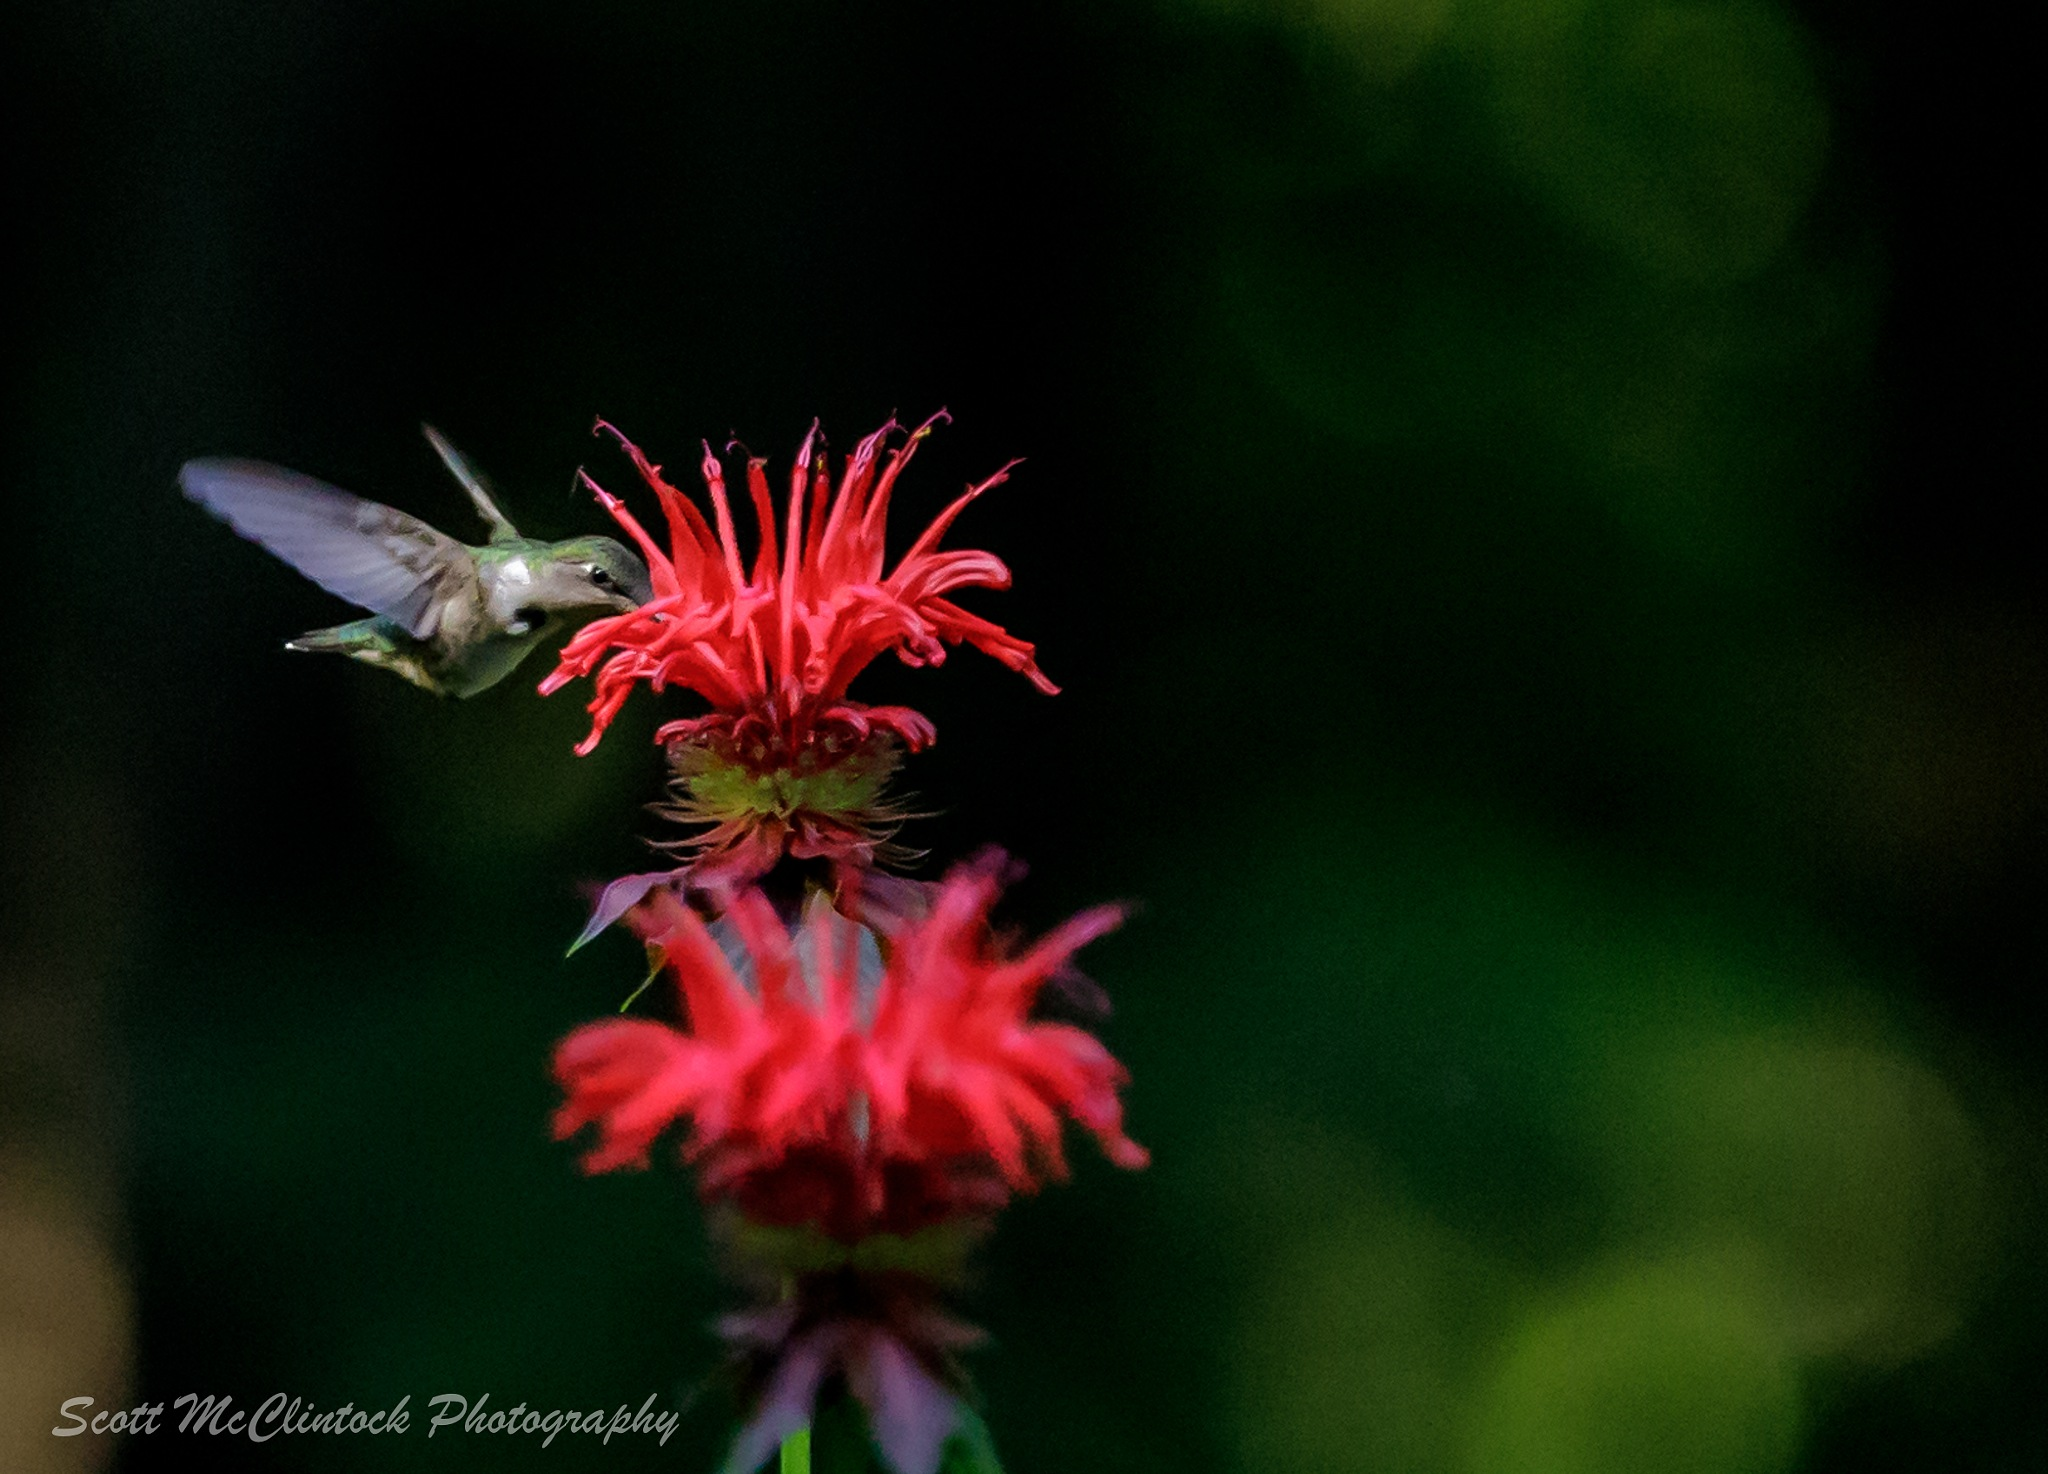 Busy Humming Bird by Scottmcc